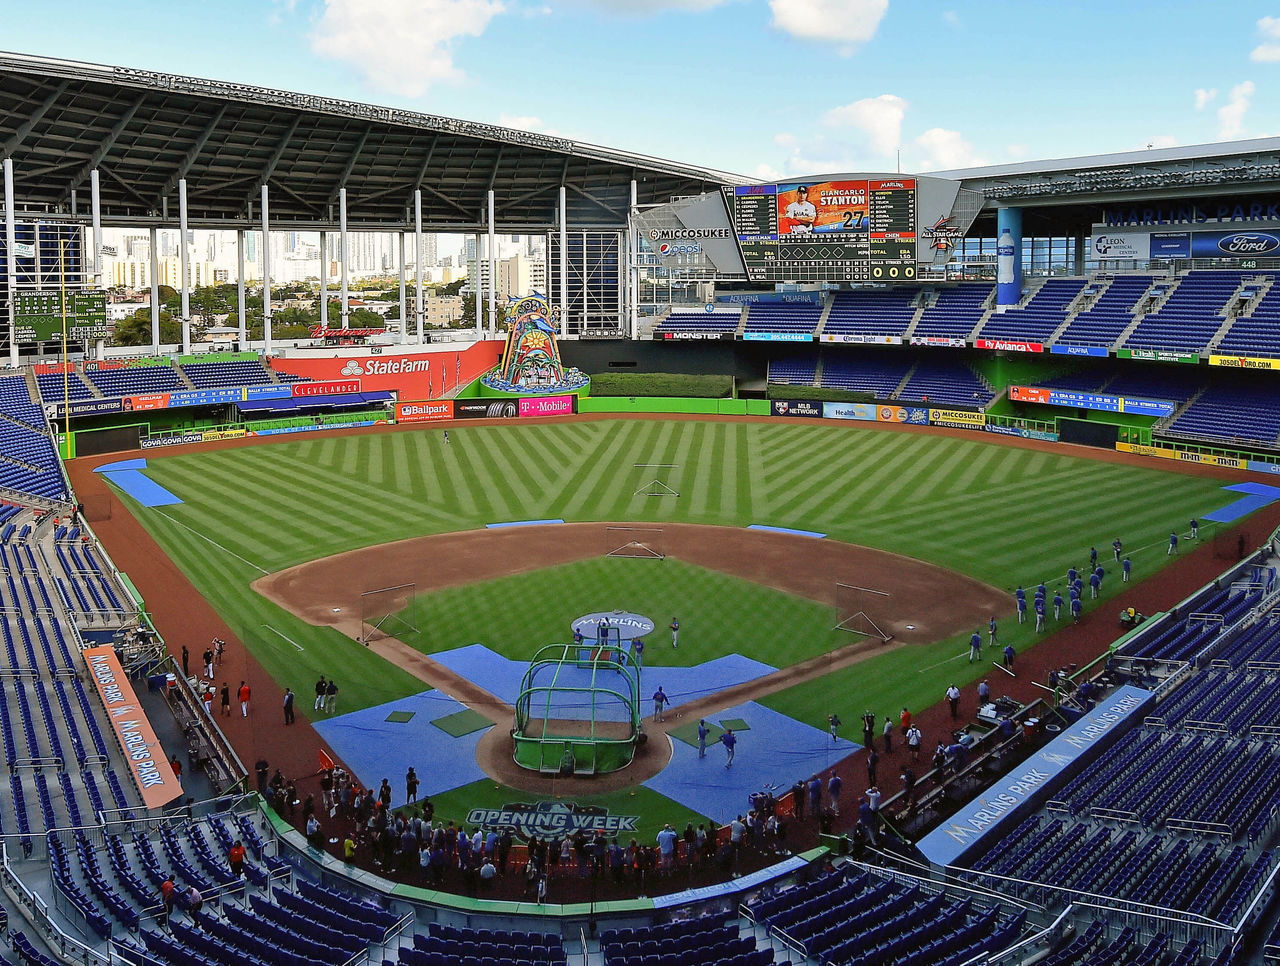 Cropped 2017 04 13t213449z 1258426604 nocid rtrmadp 3 mlb new york mets at miami marlins